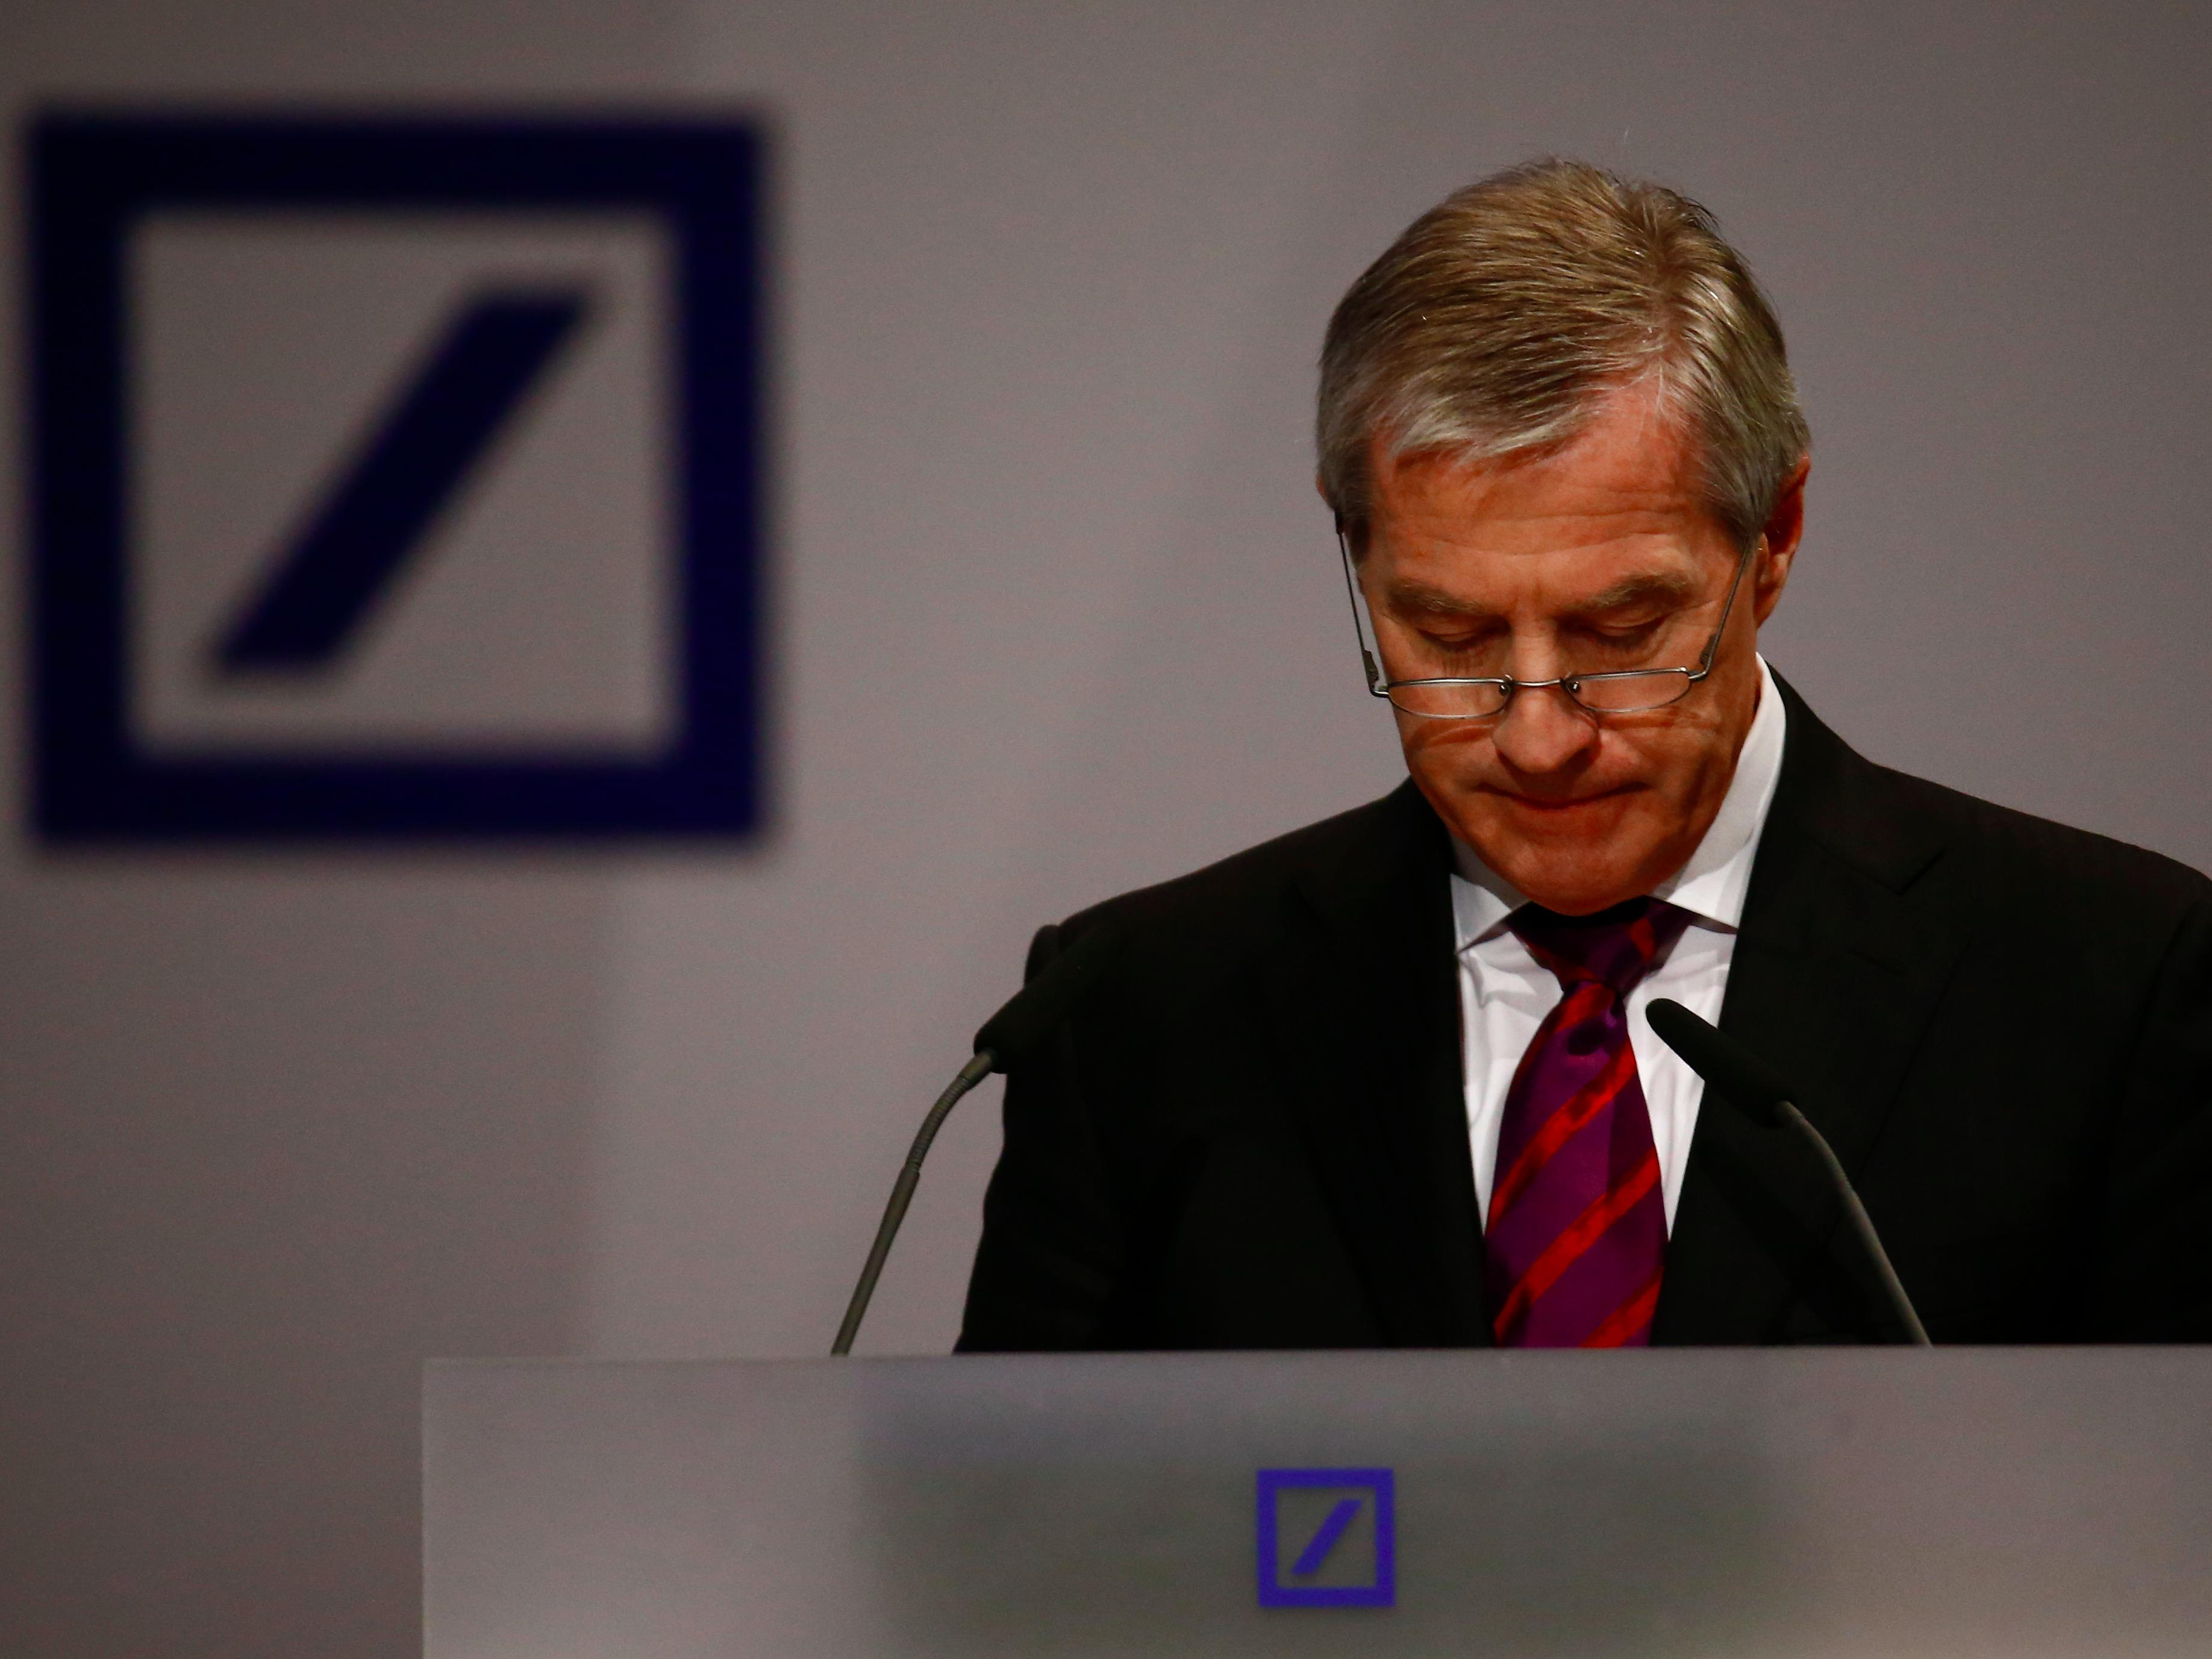 Deutsche Bank is at a record low and investors are once again scared of European banks